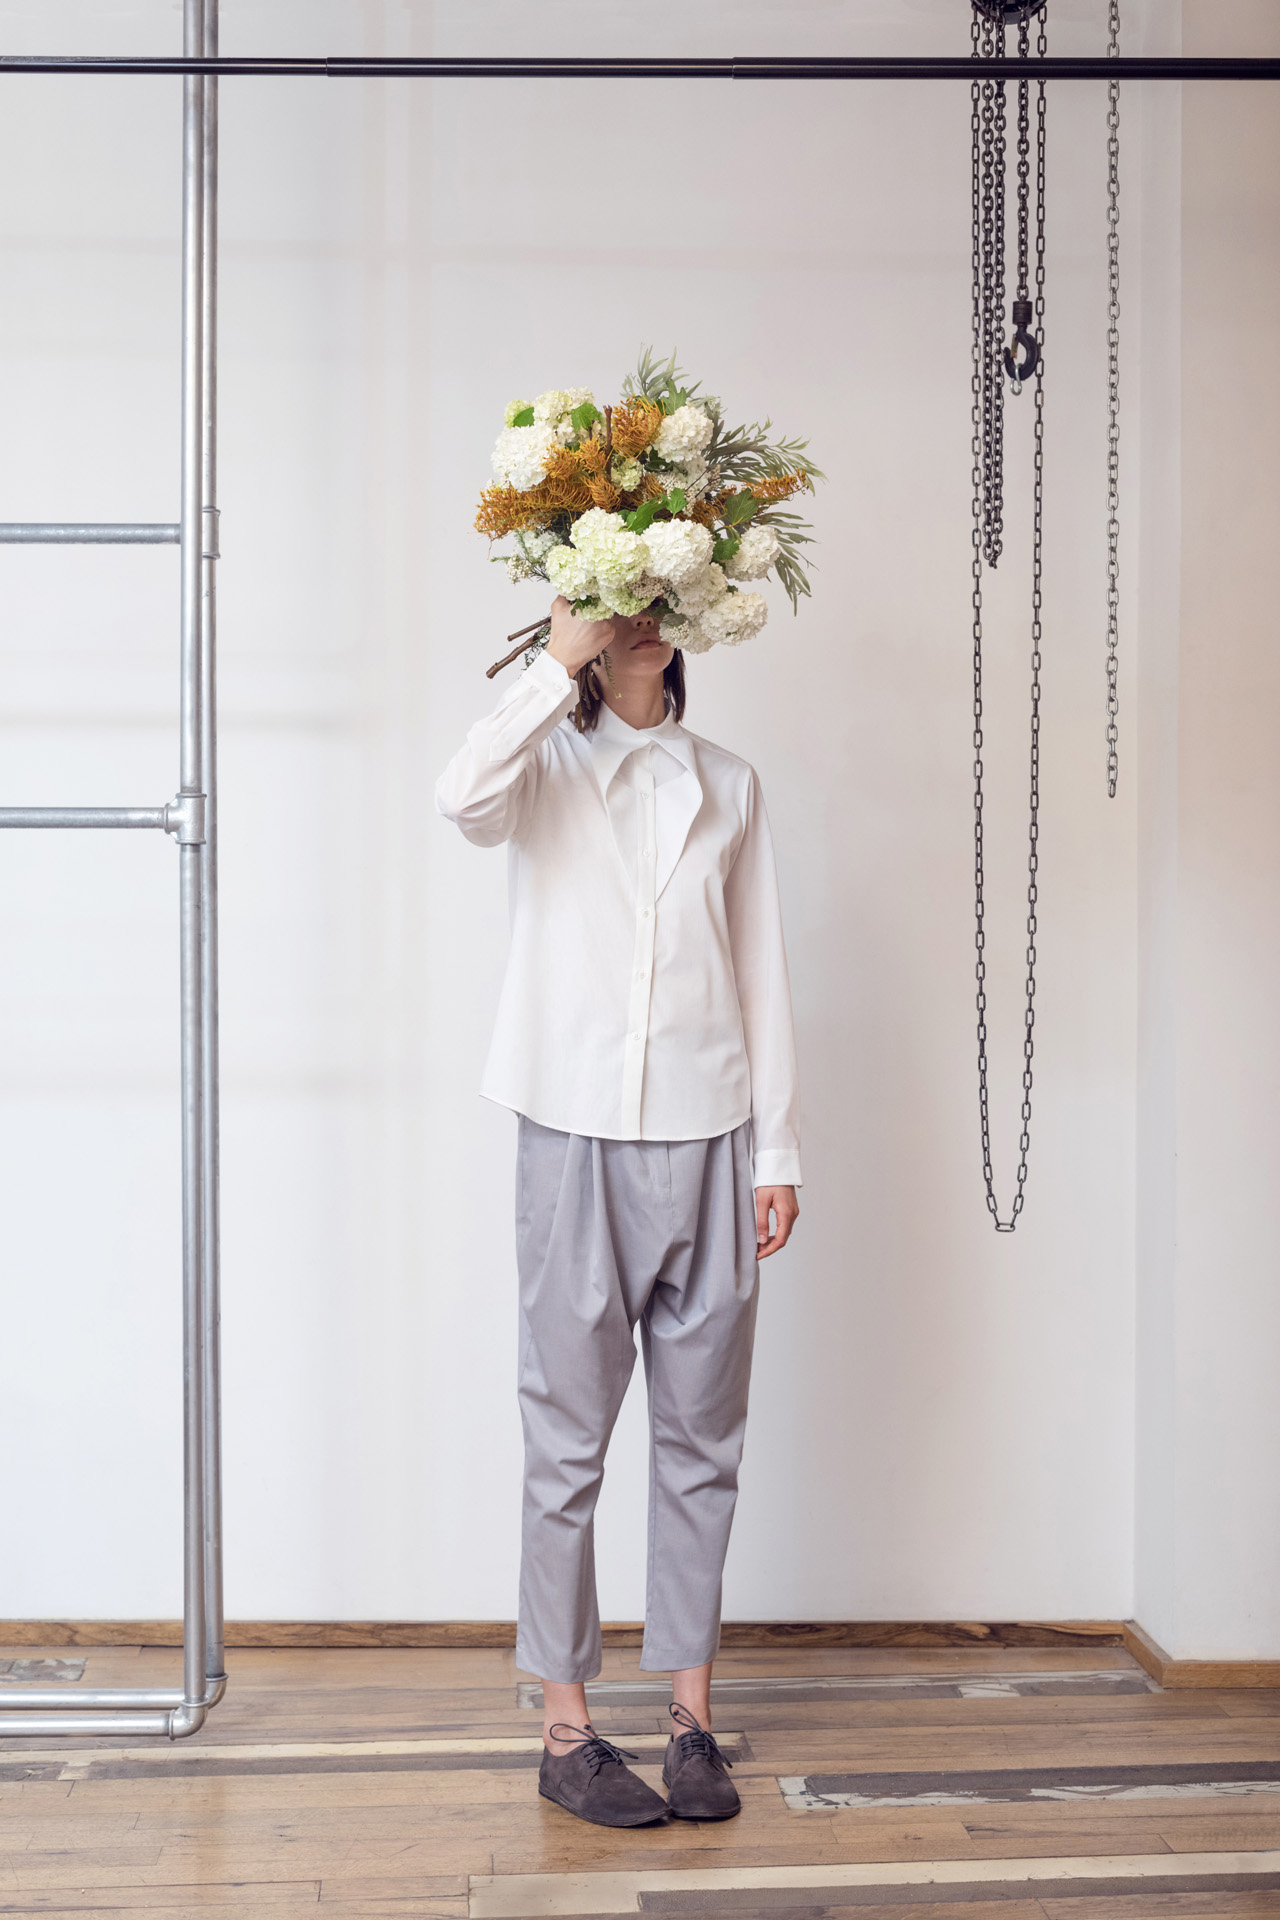 Lara Khoury | LK Stripped | Capsule 1-2019 | 6- Long Sleeve Off White Cotton Voile Shirt and Light Gray Cotton Poplin Sarwal Pants 1.jpg